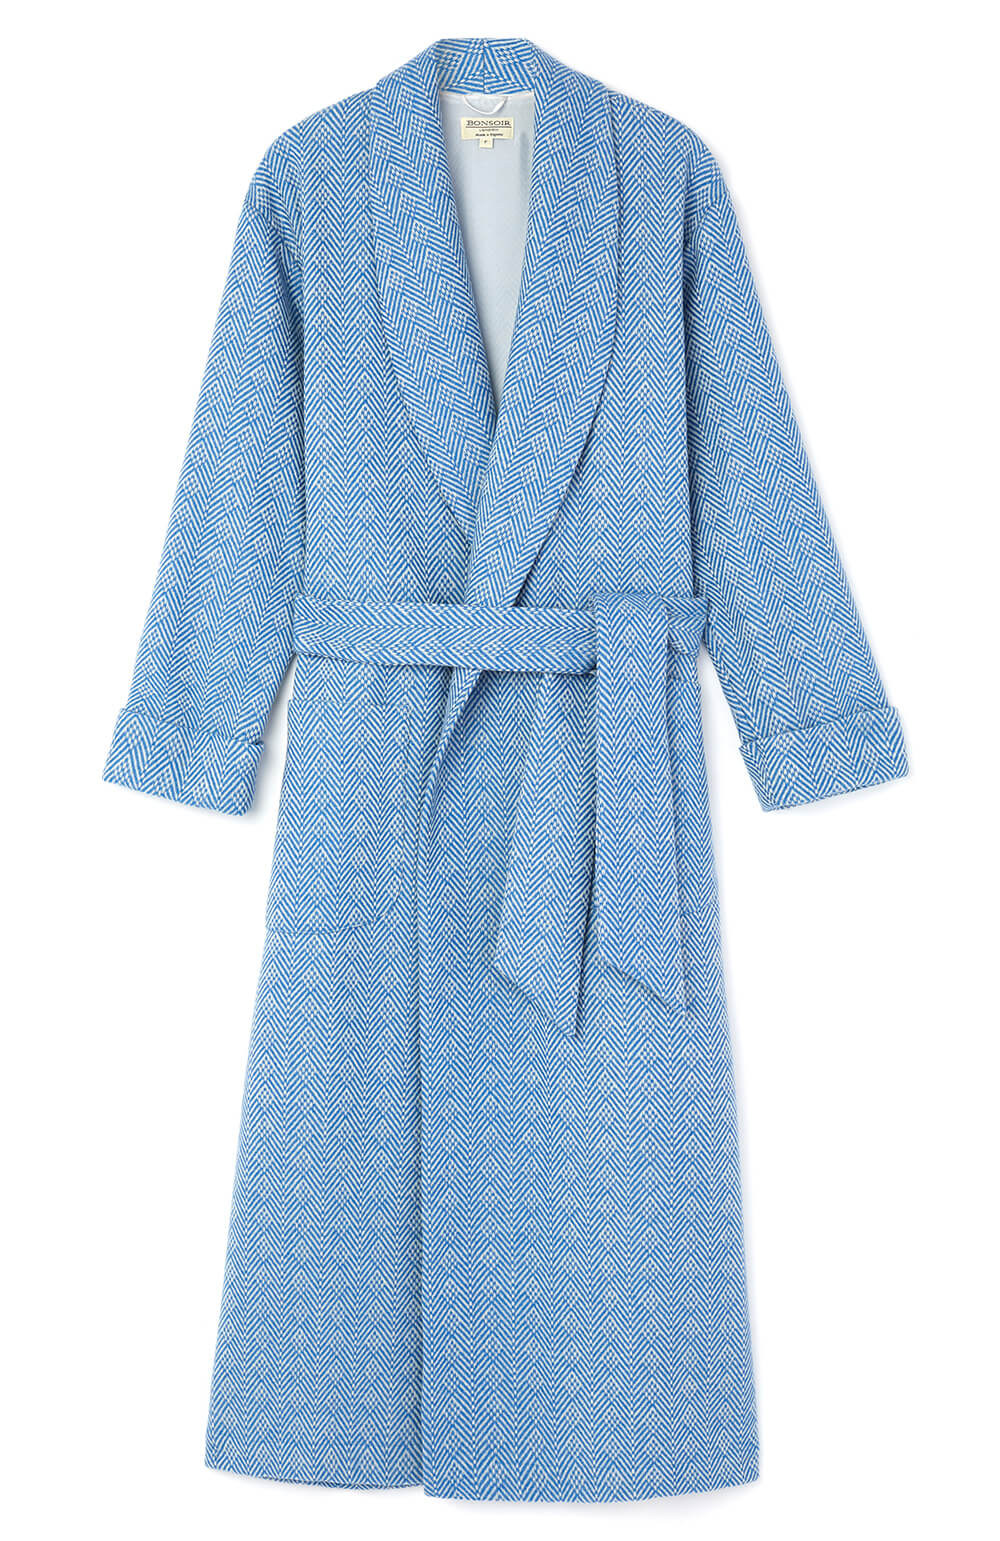 Luxury Blue Jacquard Women s Dressing Gown  00aad6aff